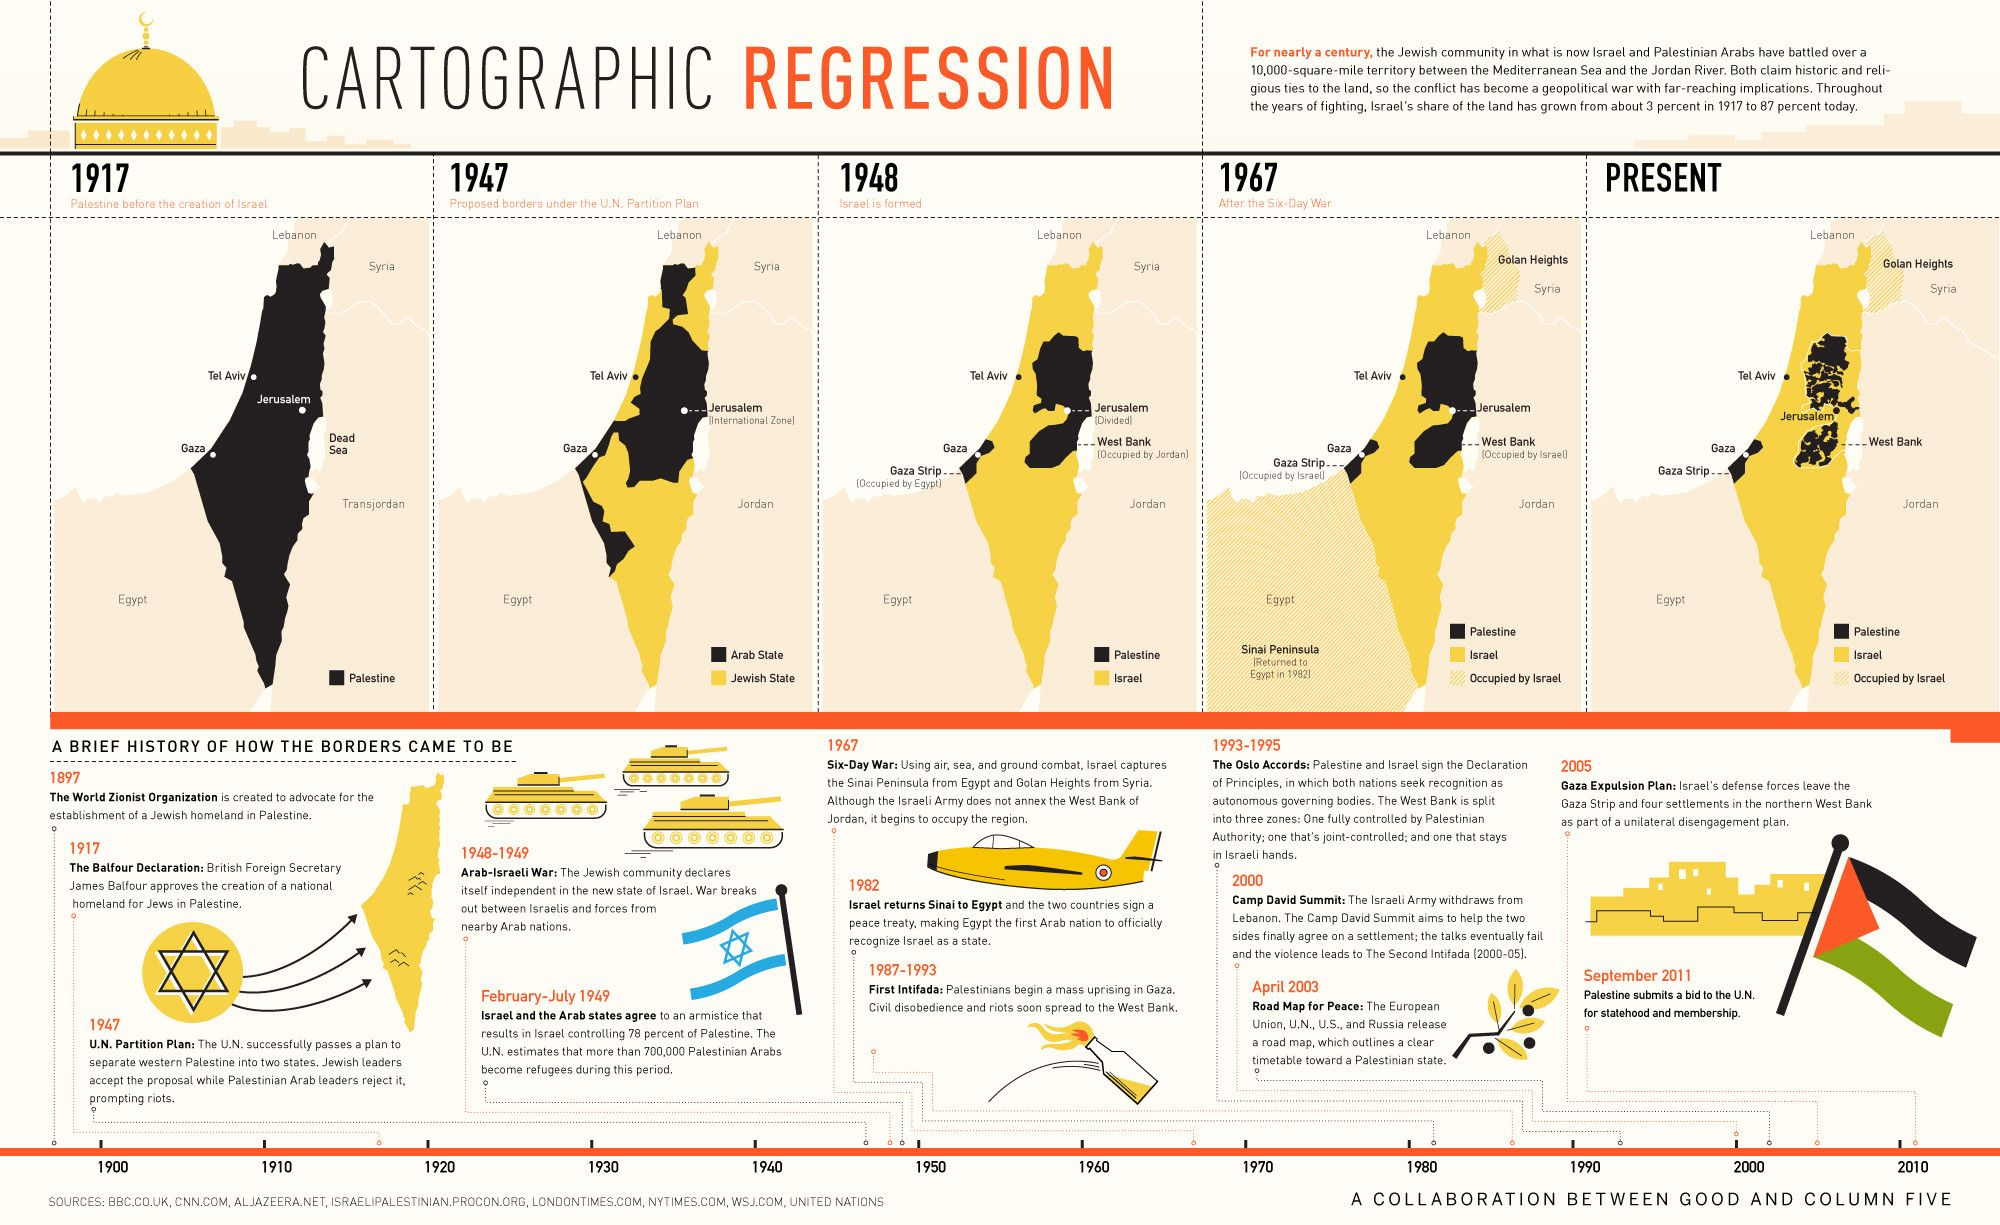 a brief history of the i and palestinian border wars a brief history of the i and palestinian border wars infographic